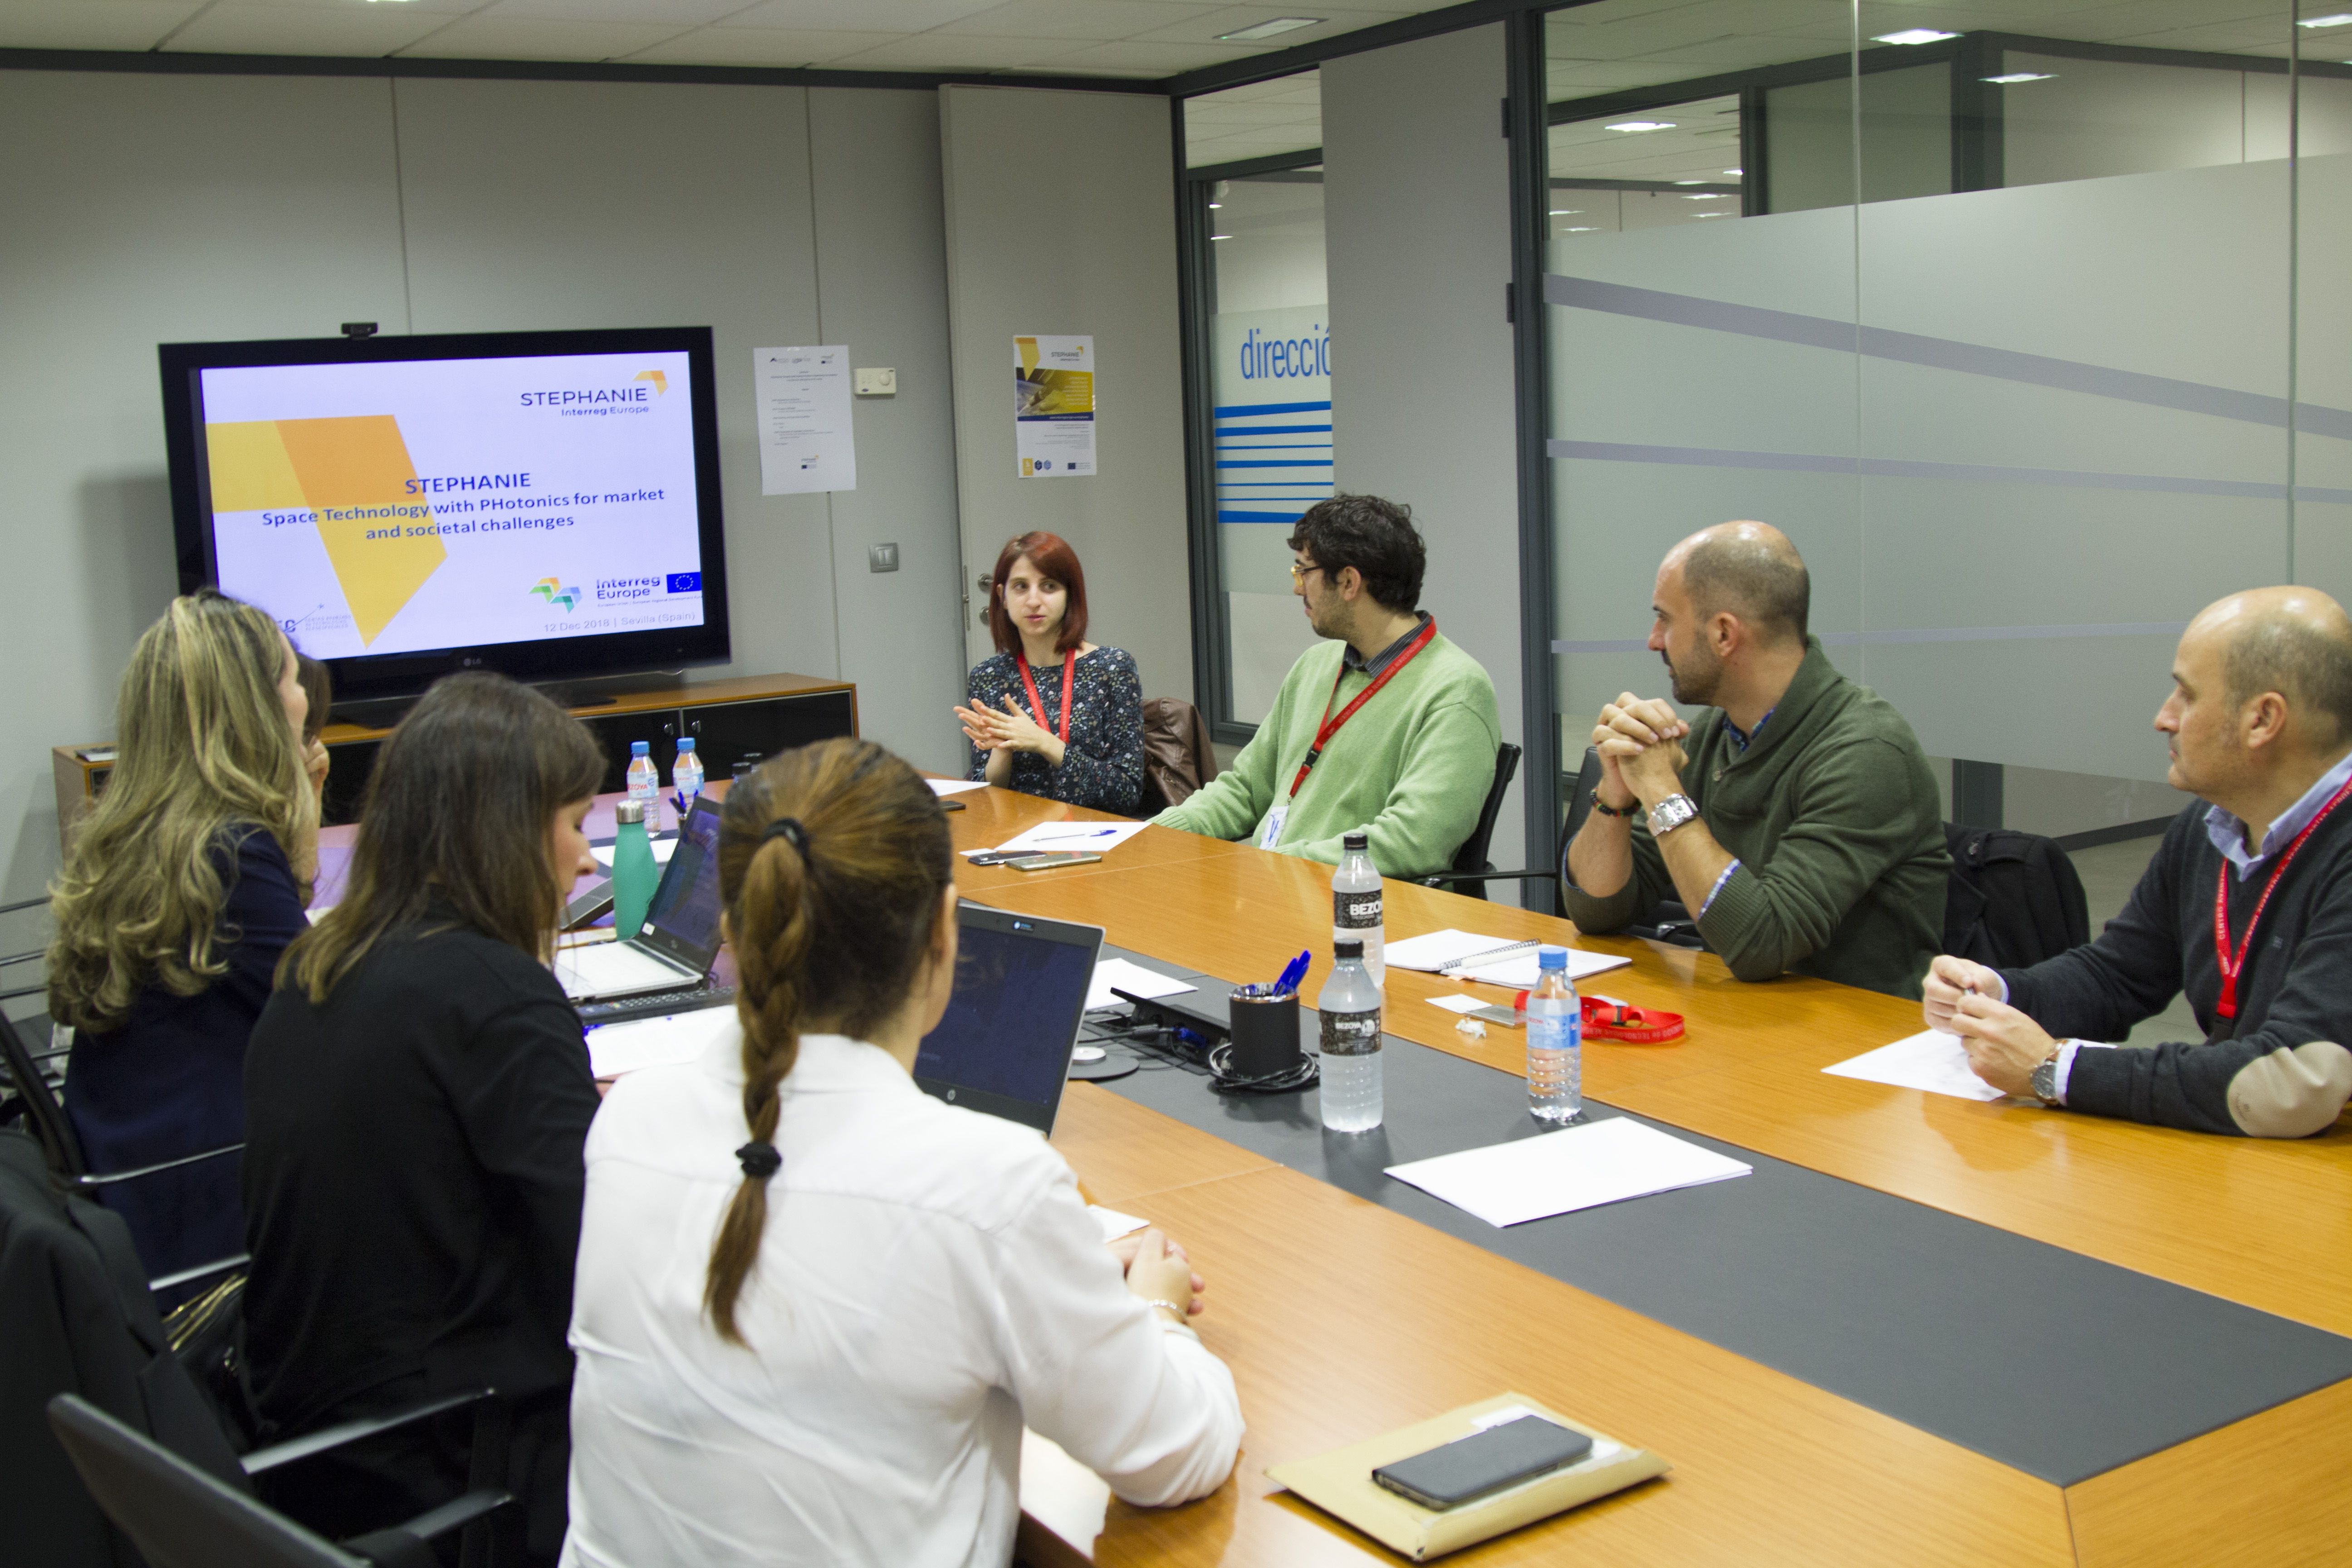 Workshop of the STEPHANIE project to bring conclusions about good practices that improve the funding of R&D in Andalusia